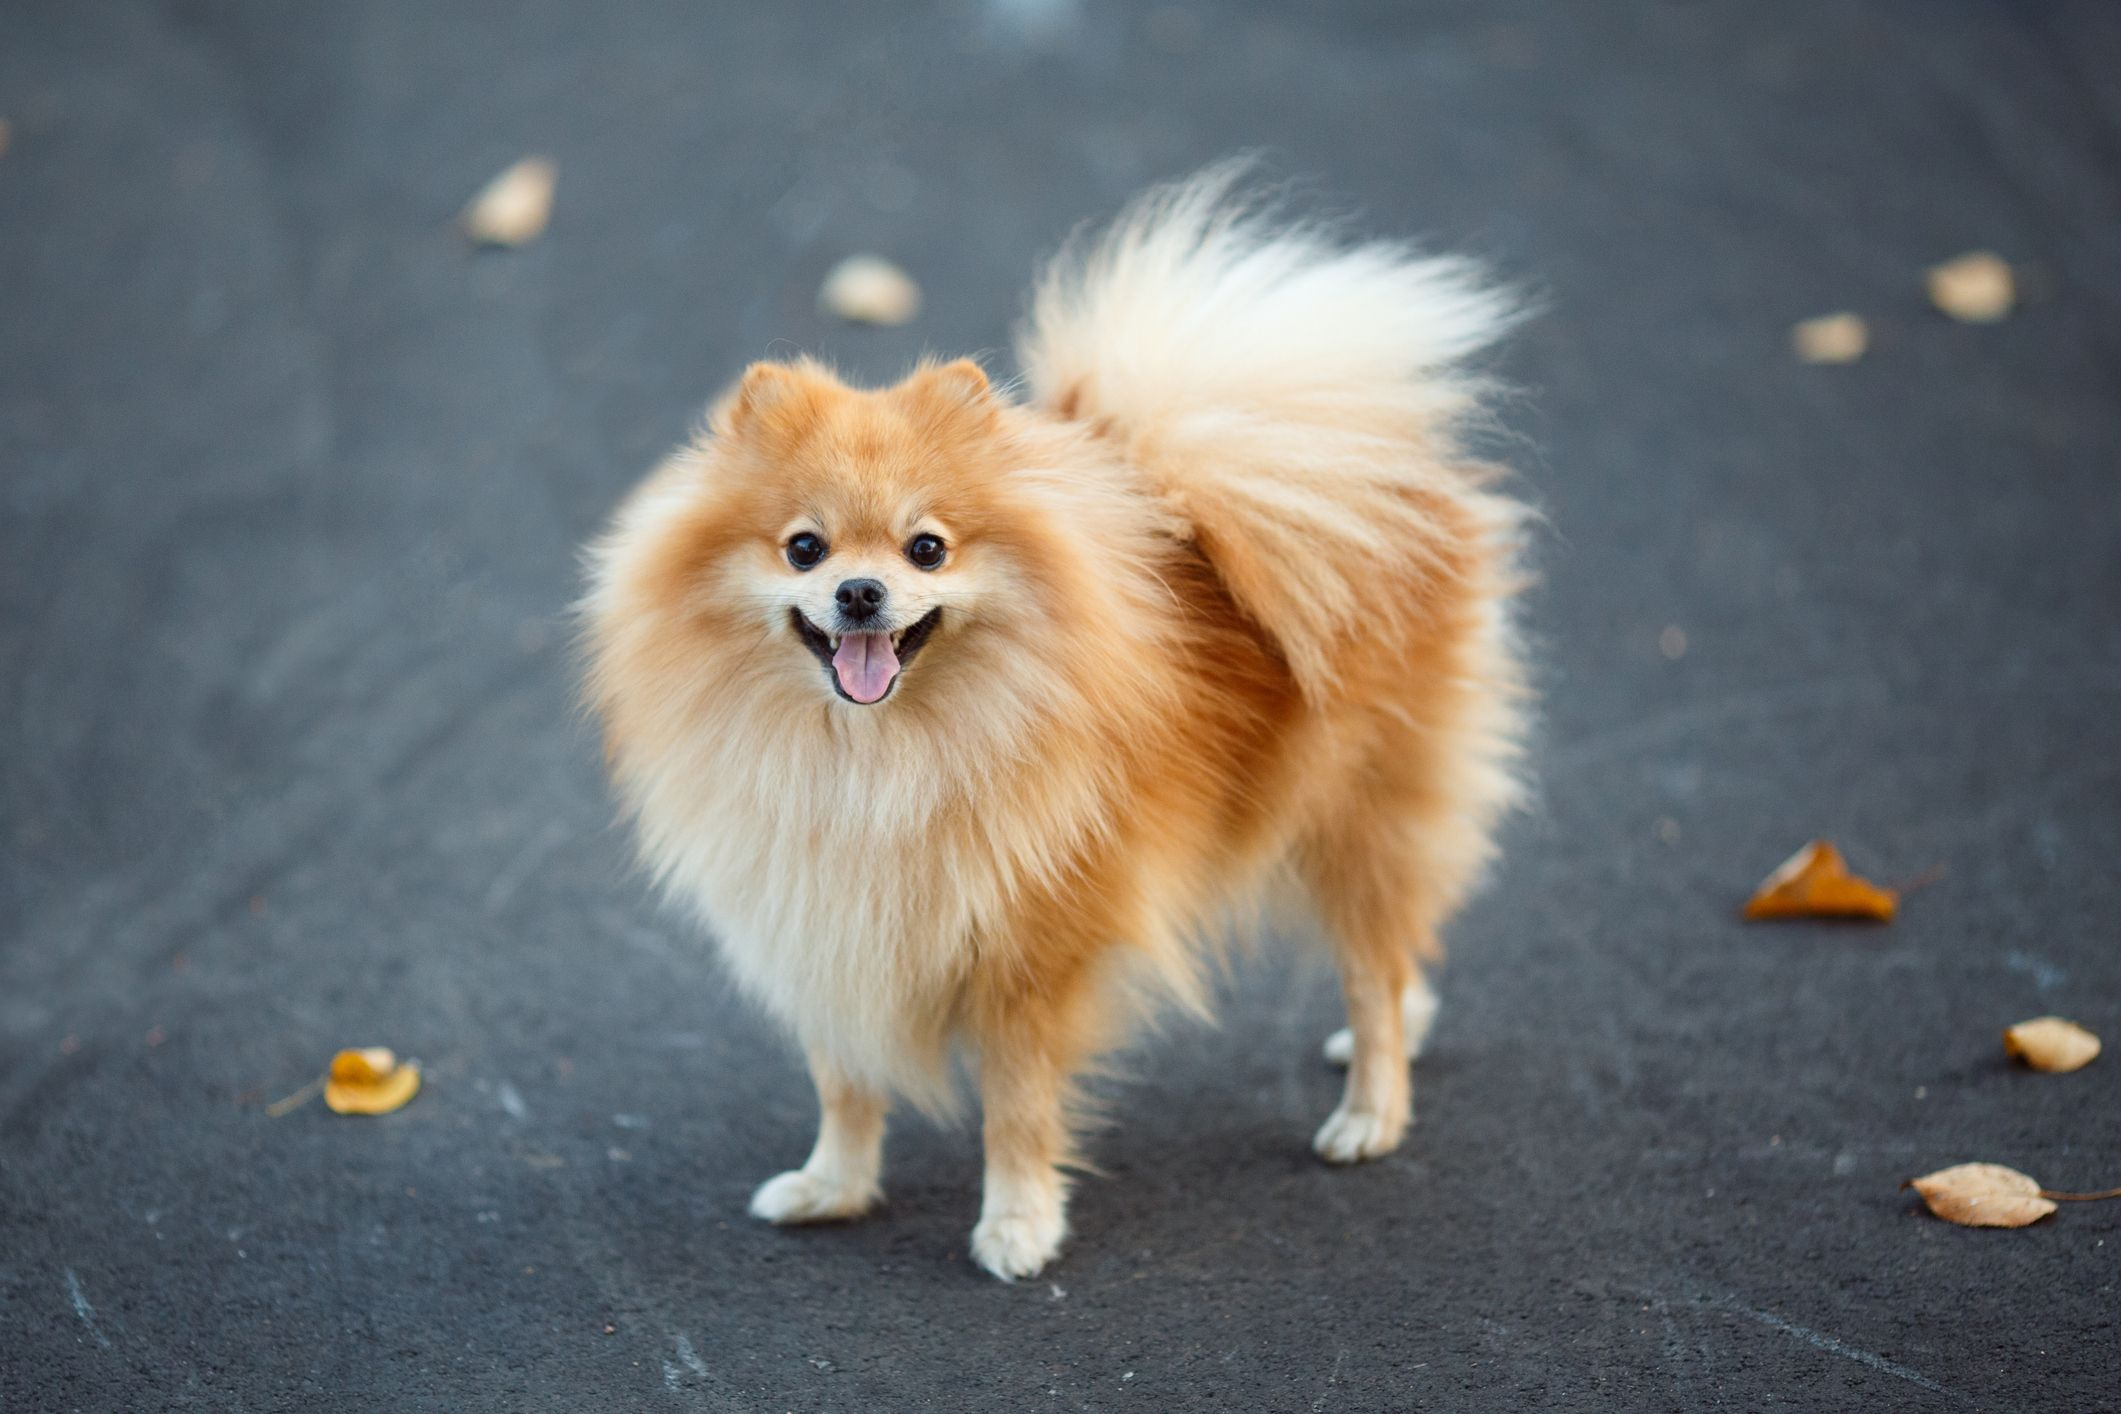 43 Best Small Dog Breeds - Toy Breed Dogs